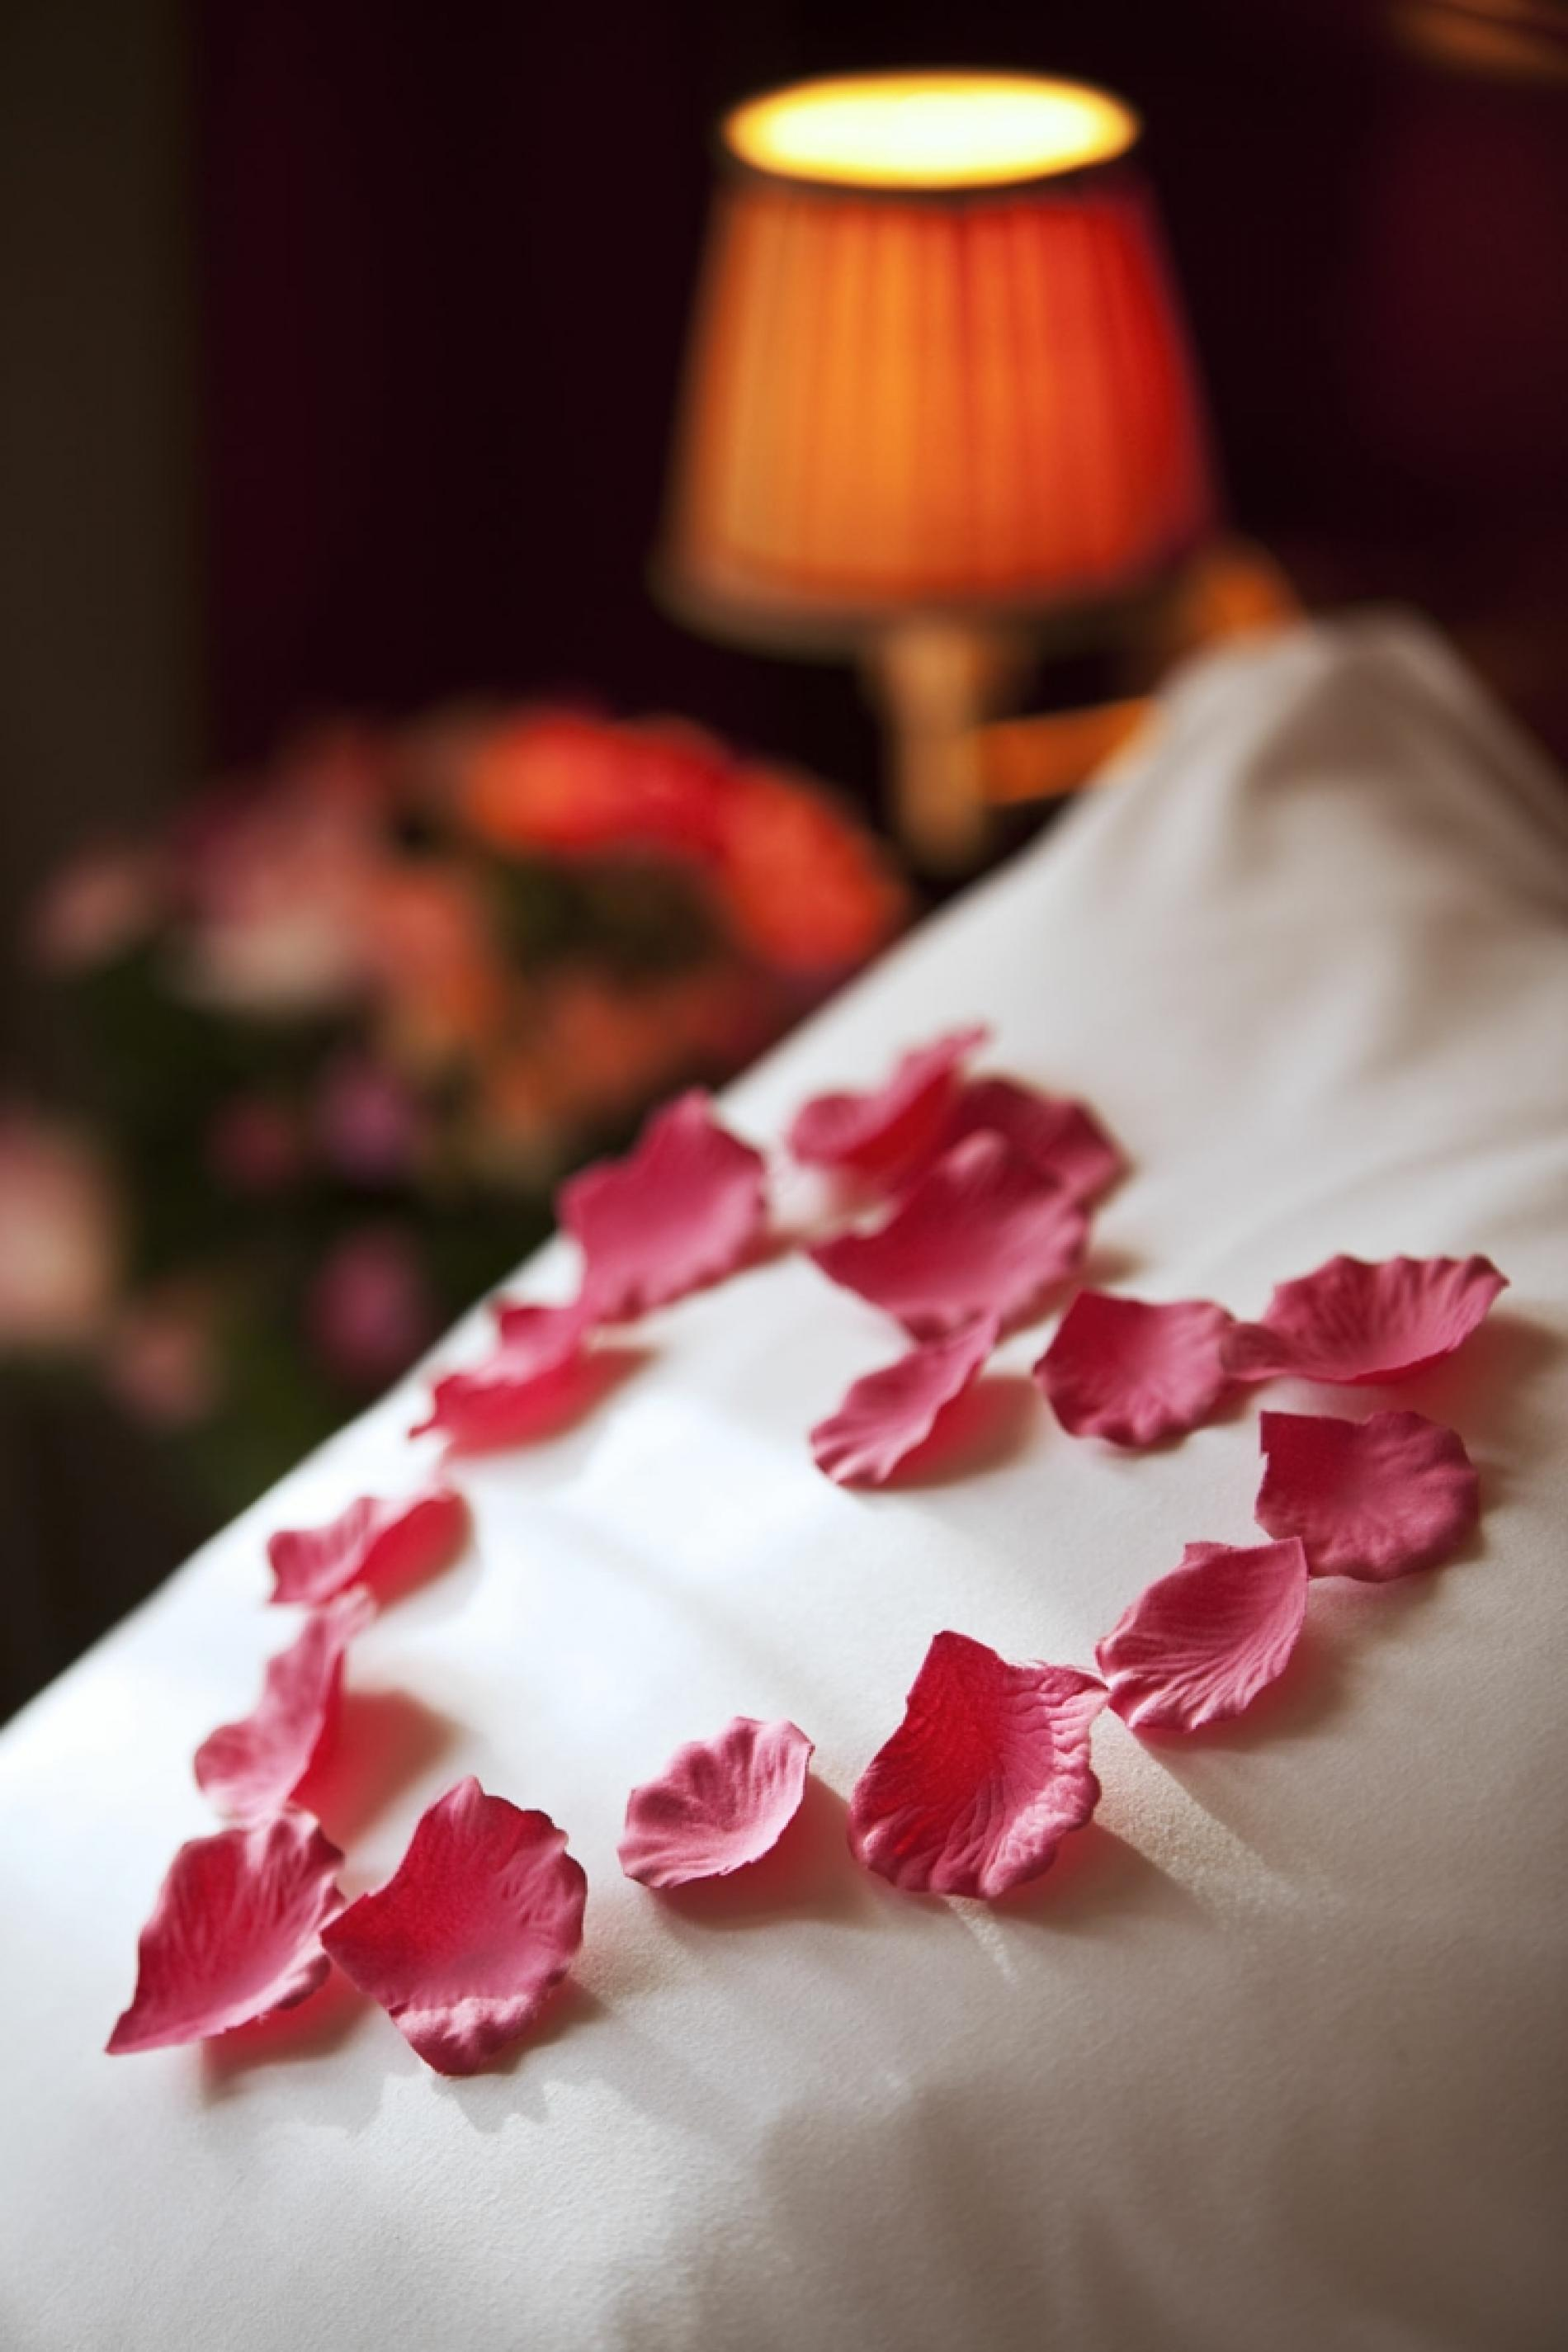 Genav VIP: Bathrobes, slippers, flowers, rose petals and sweetmeats